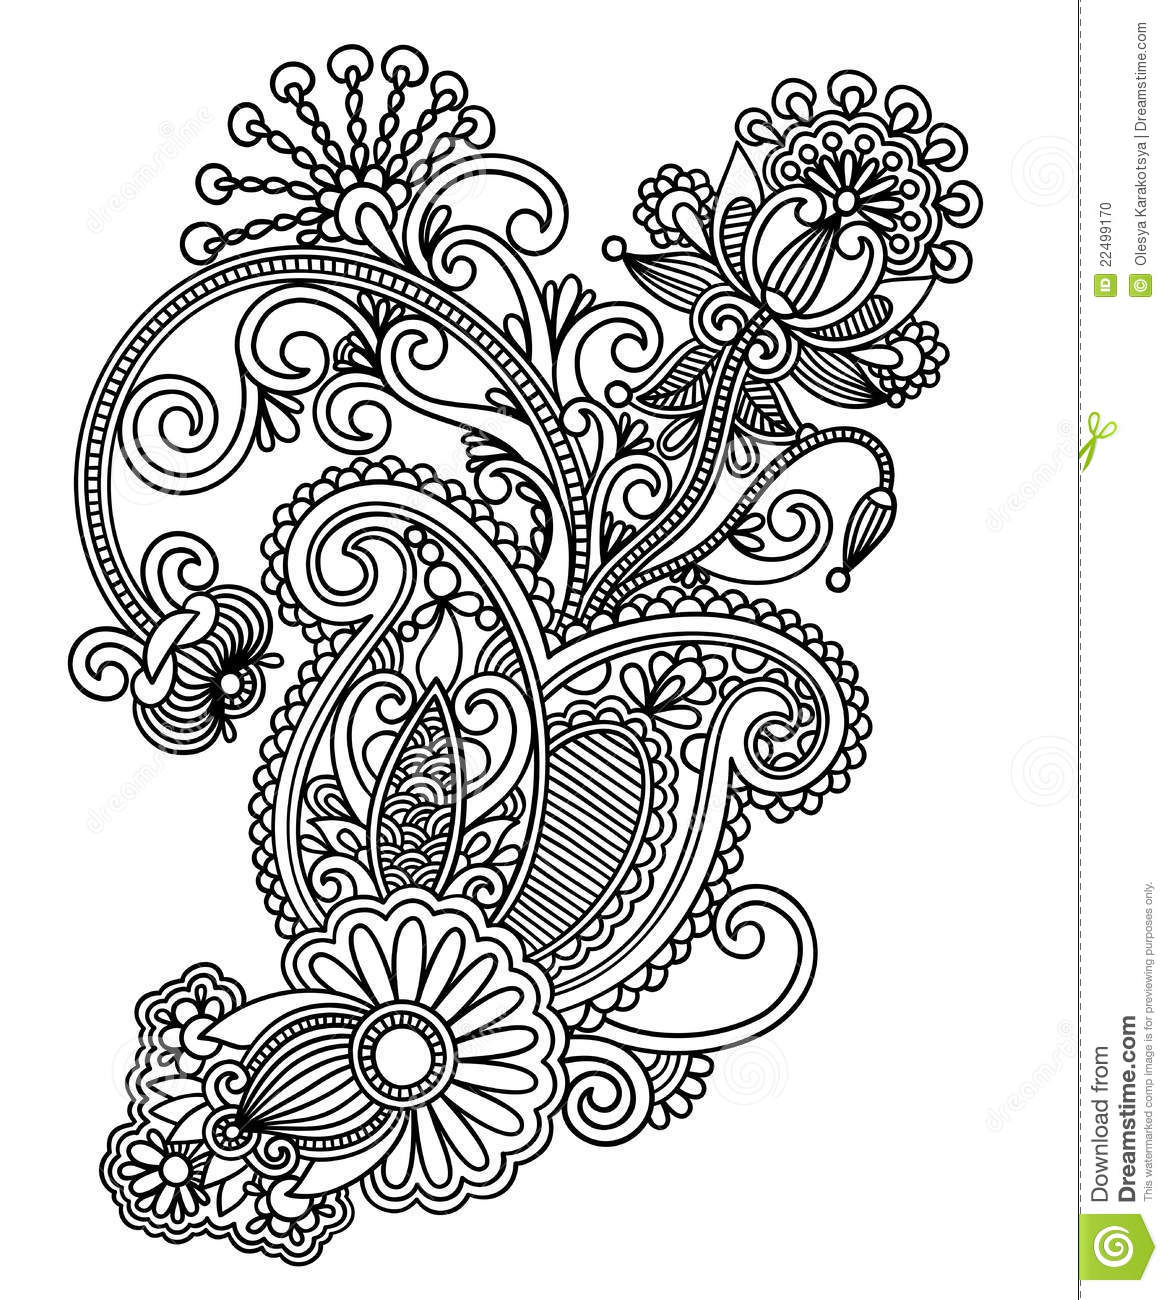 Line And Art Design Srl : Line art ornate flower design stock vector illustration